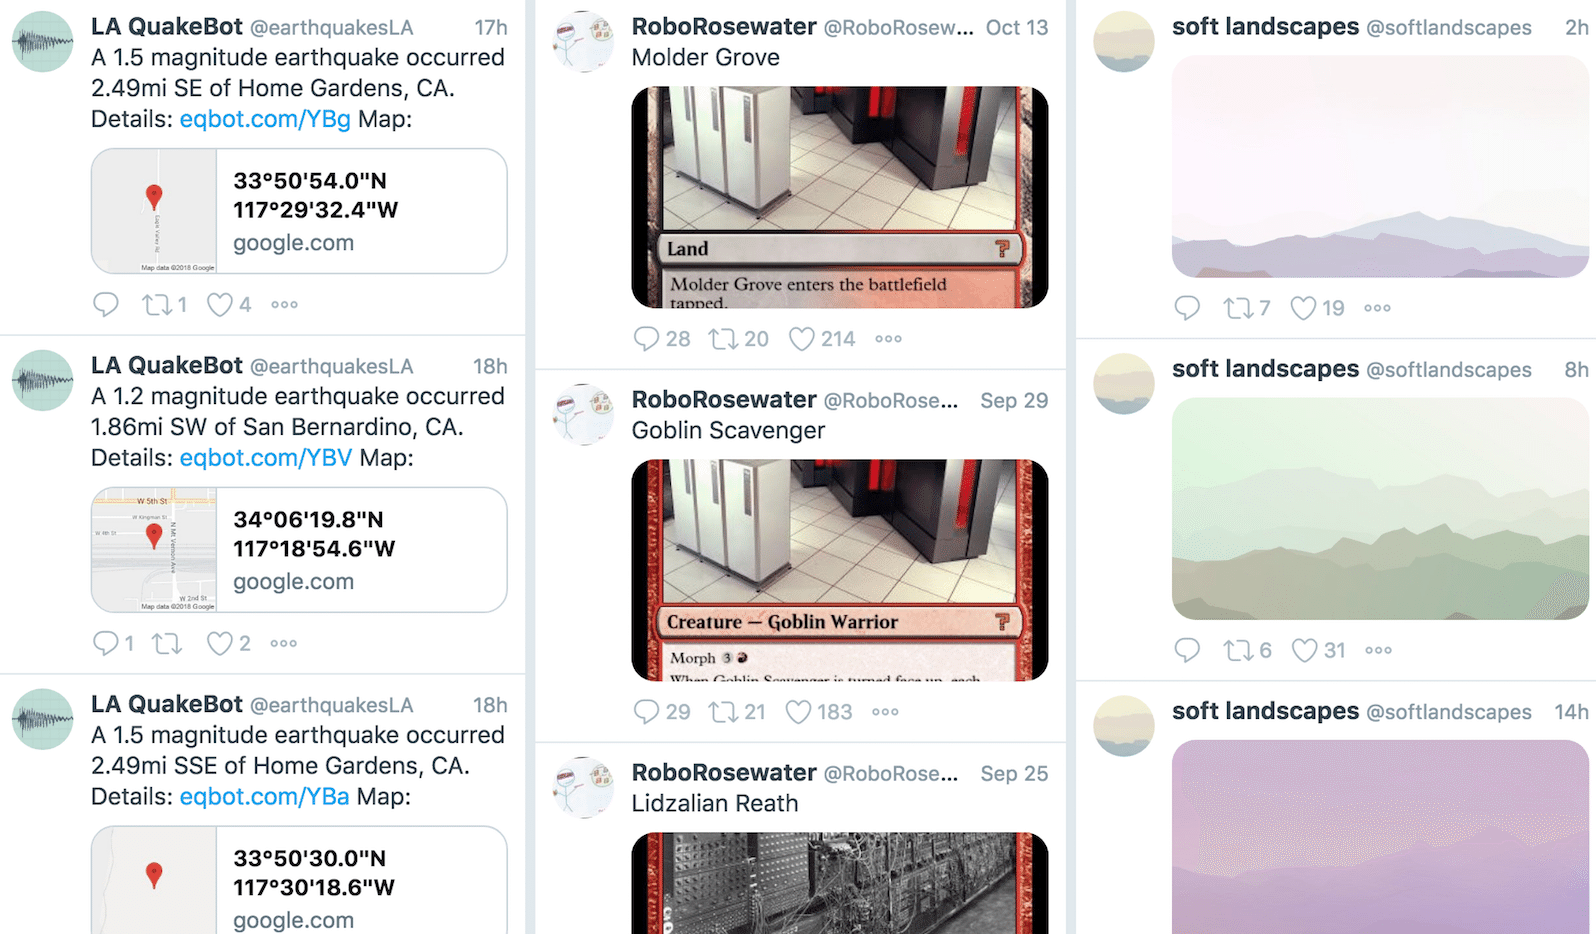 Twitter bots earthquakesLA roborosewater softlandscapes